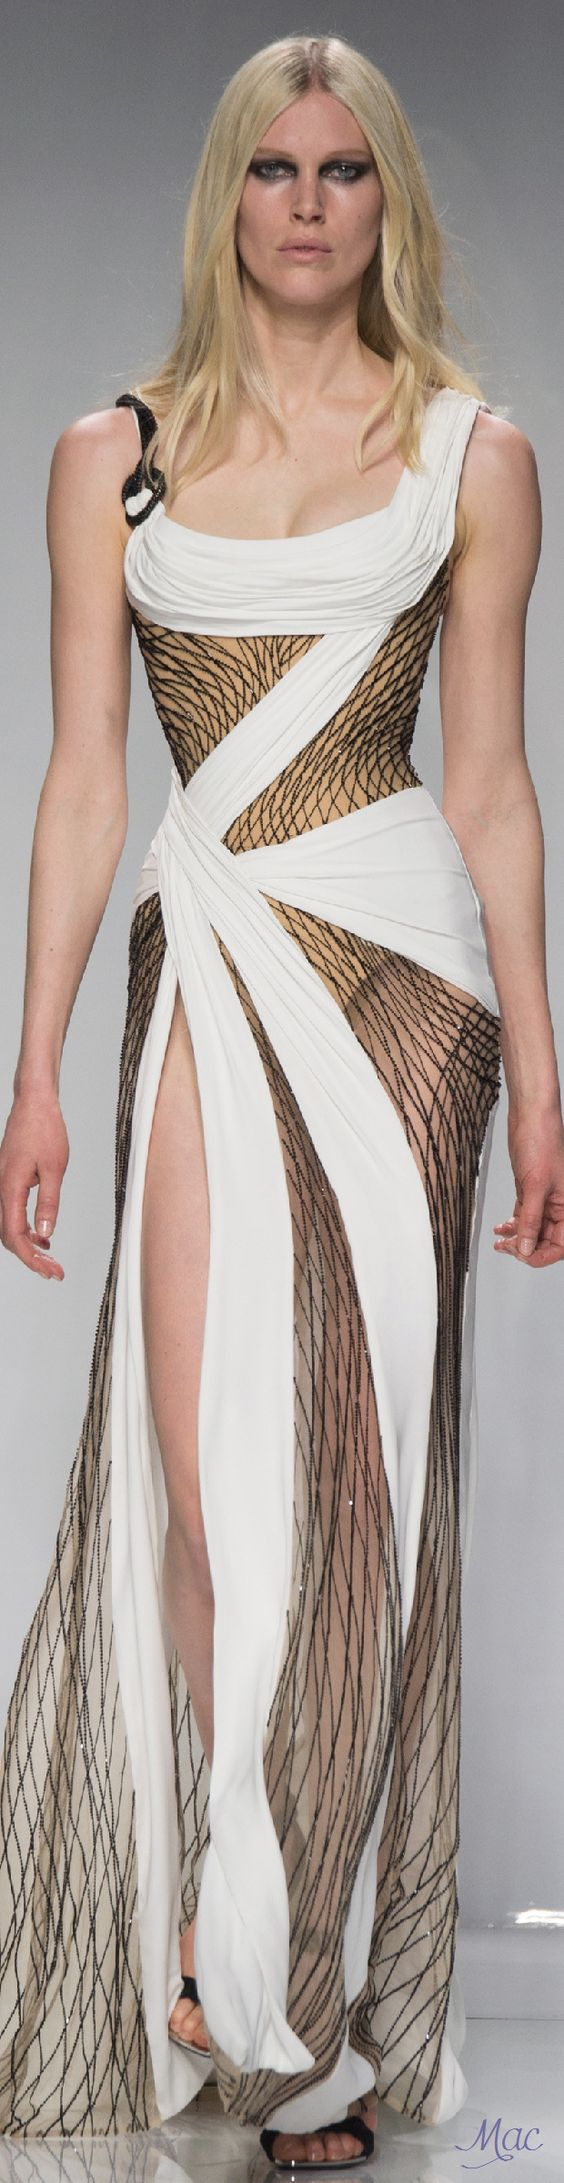 Atelier Versace Spring 2016 Haute Couture                                                                                                                                                     More